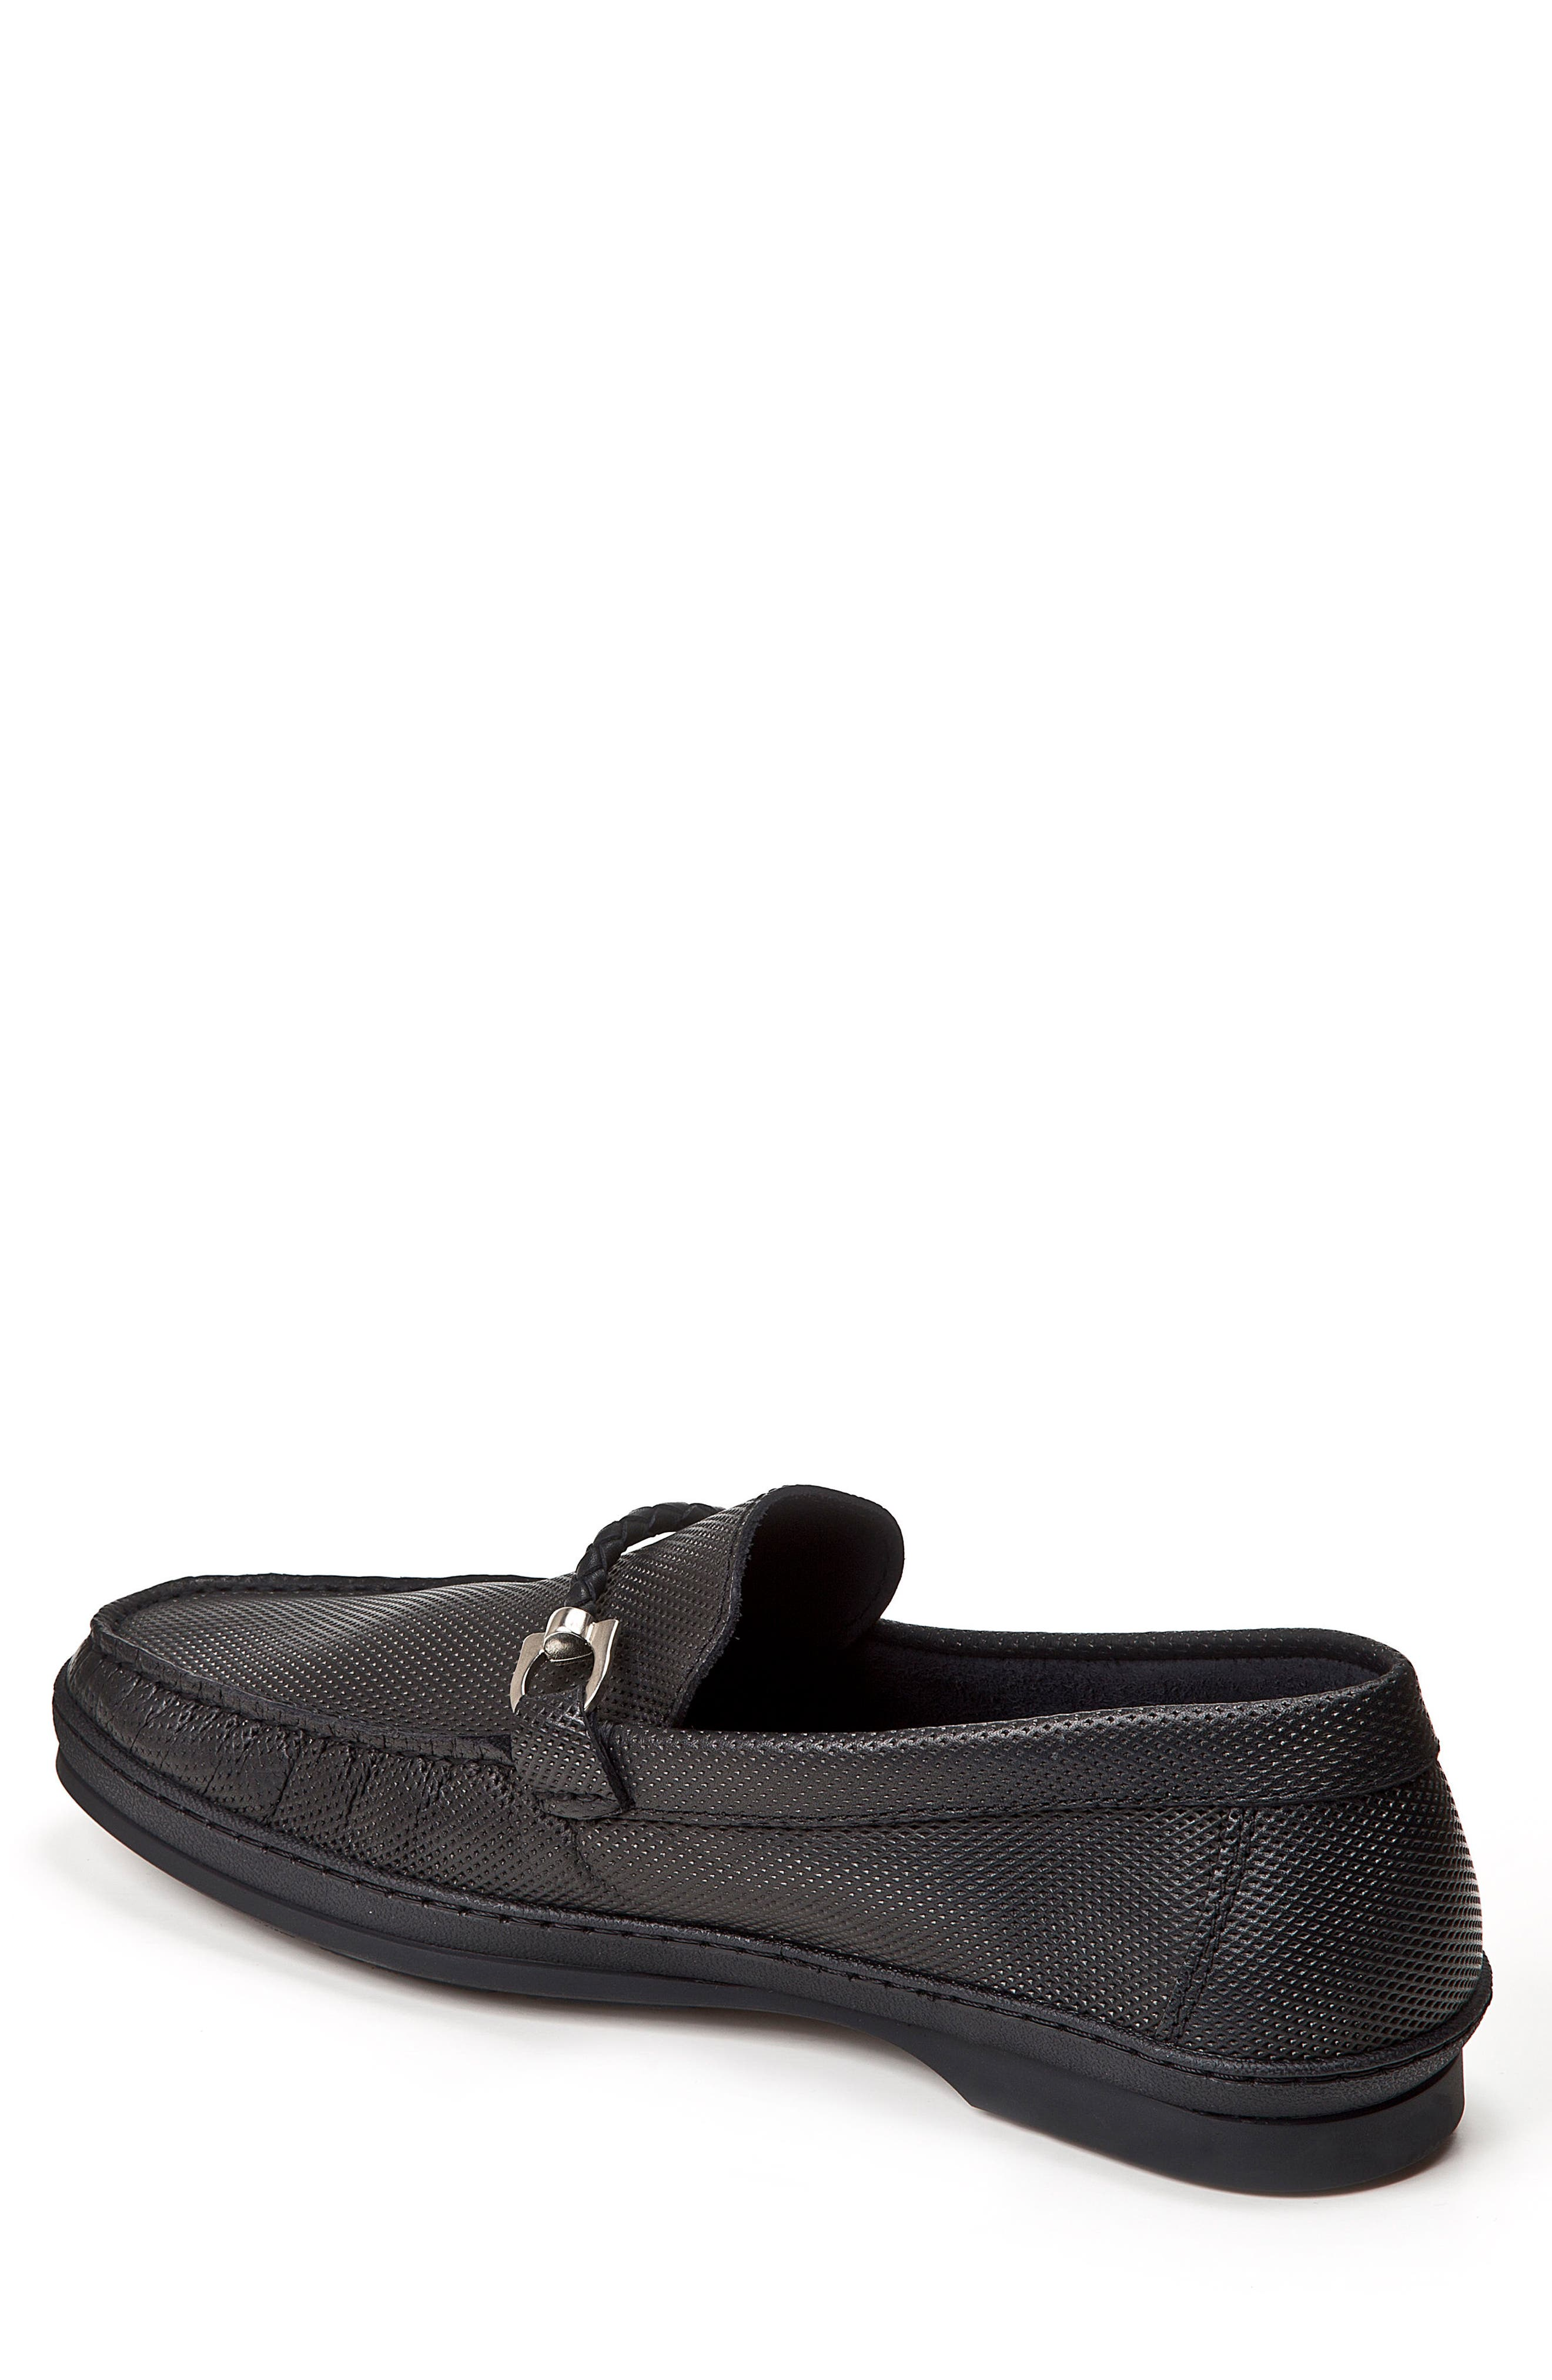 SANDRO MOSCOLONI,                             Benito Perforated Moc Toe Loafer,                             Alternate thumbnail 2, color,                             001